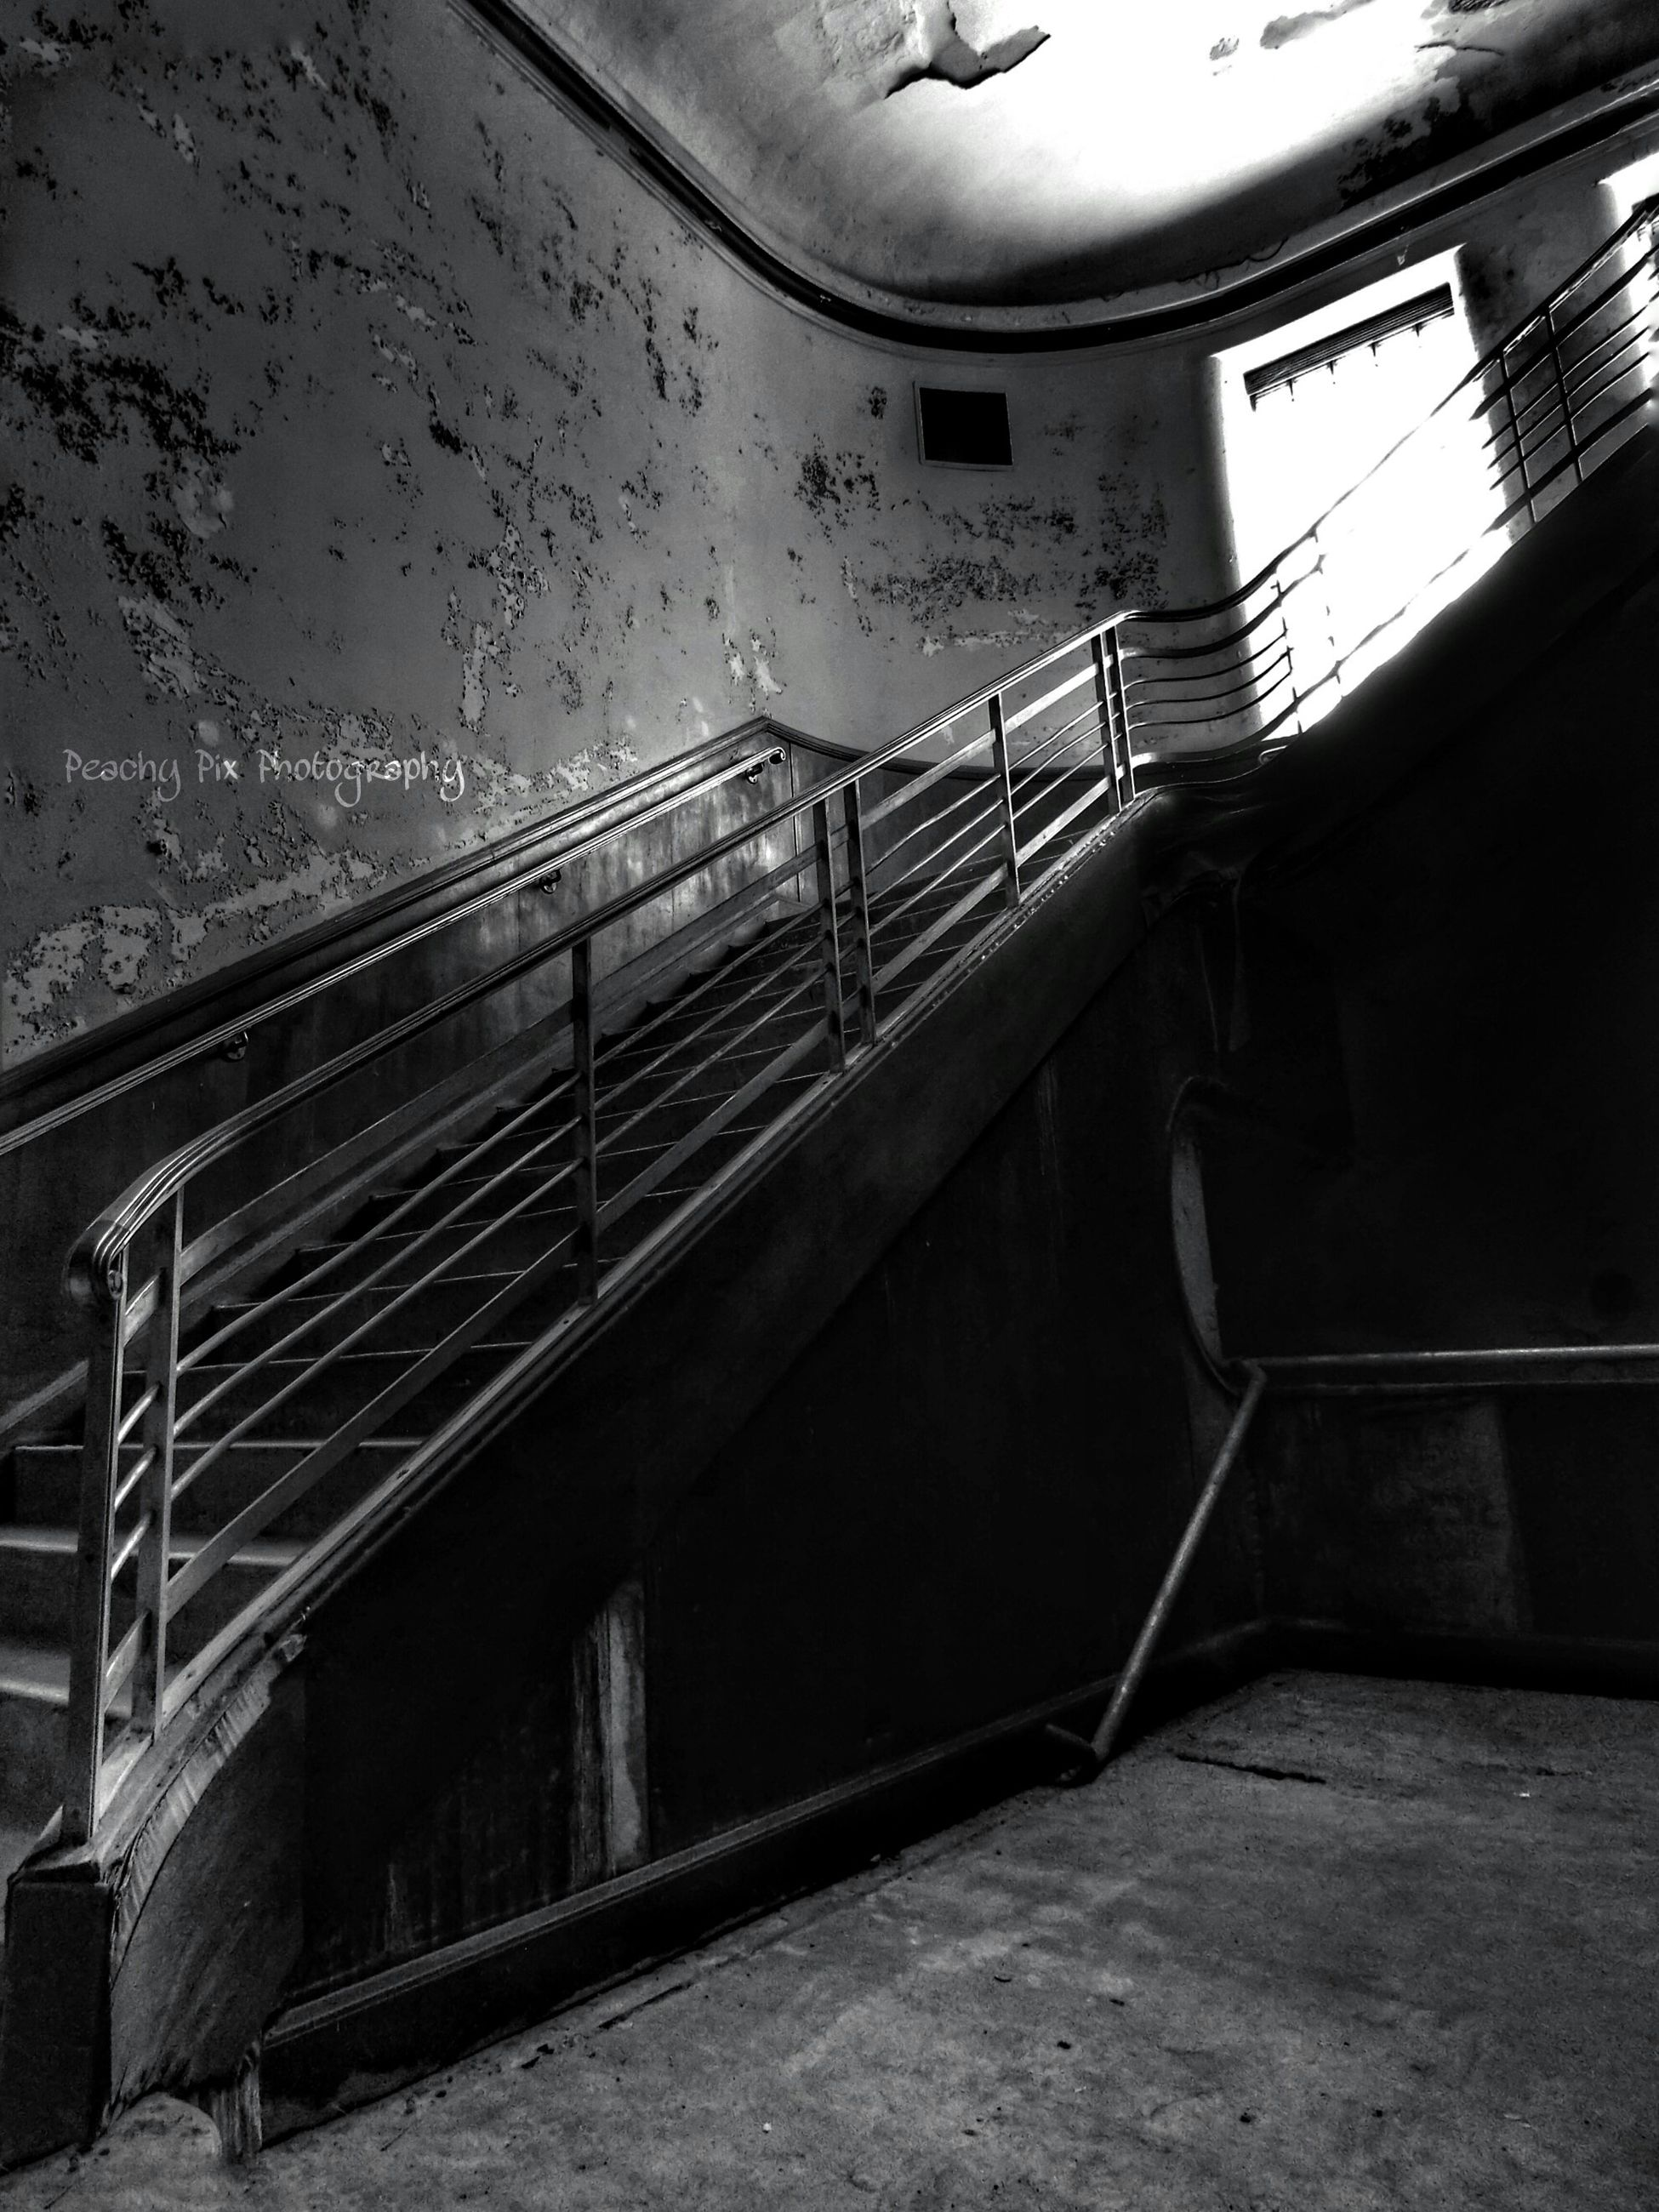 indoors, built structure, architecture, railing, steps, ceiling, staircase, steps and staircases, empty, illuminated, transportation, the way forward, absence, connection, rail transportation, railroad station, metal, no people, diminishing perspective, high angle view